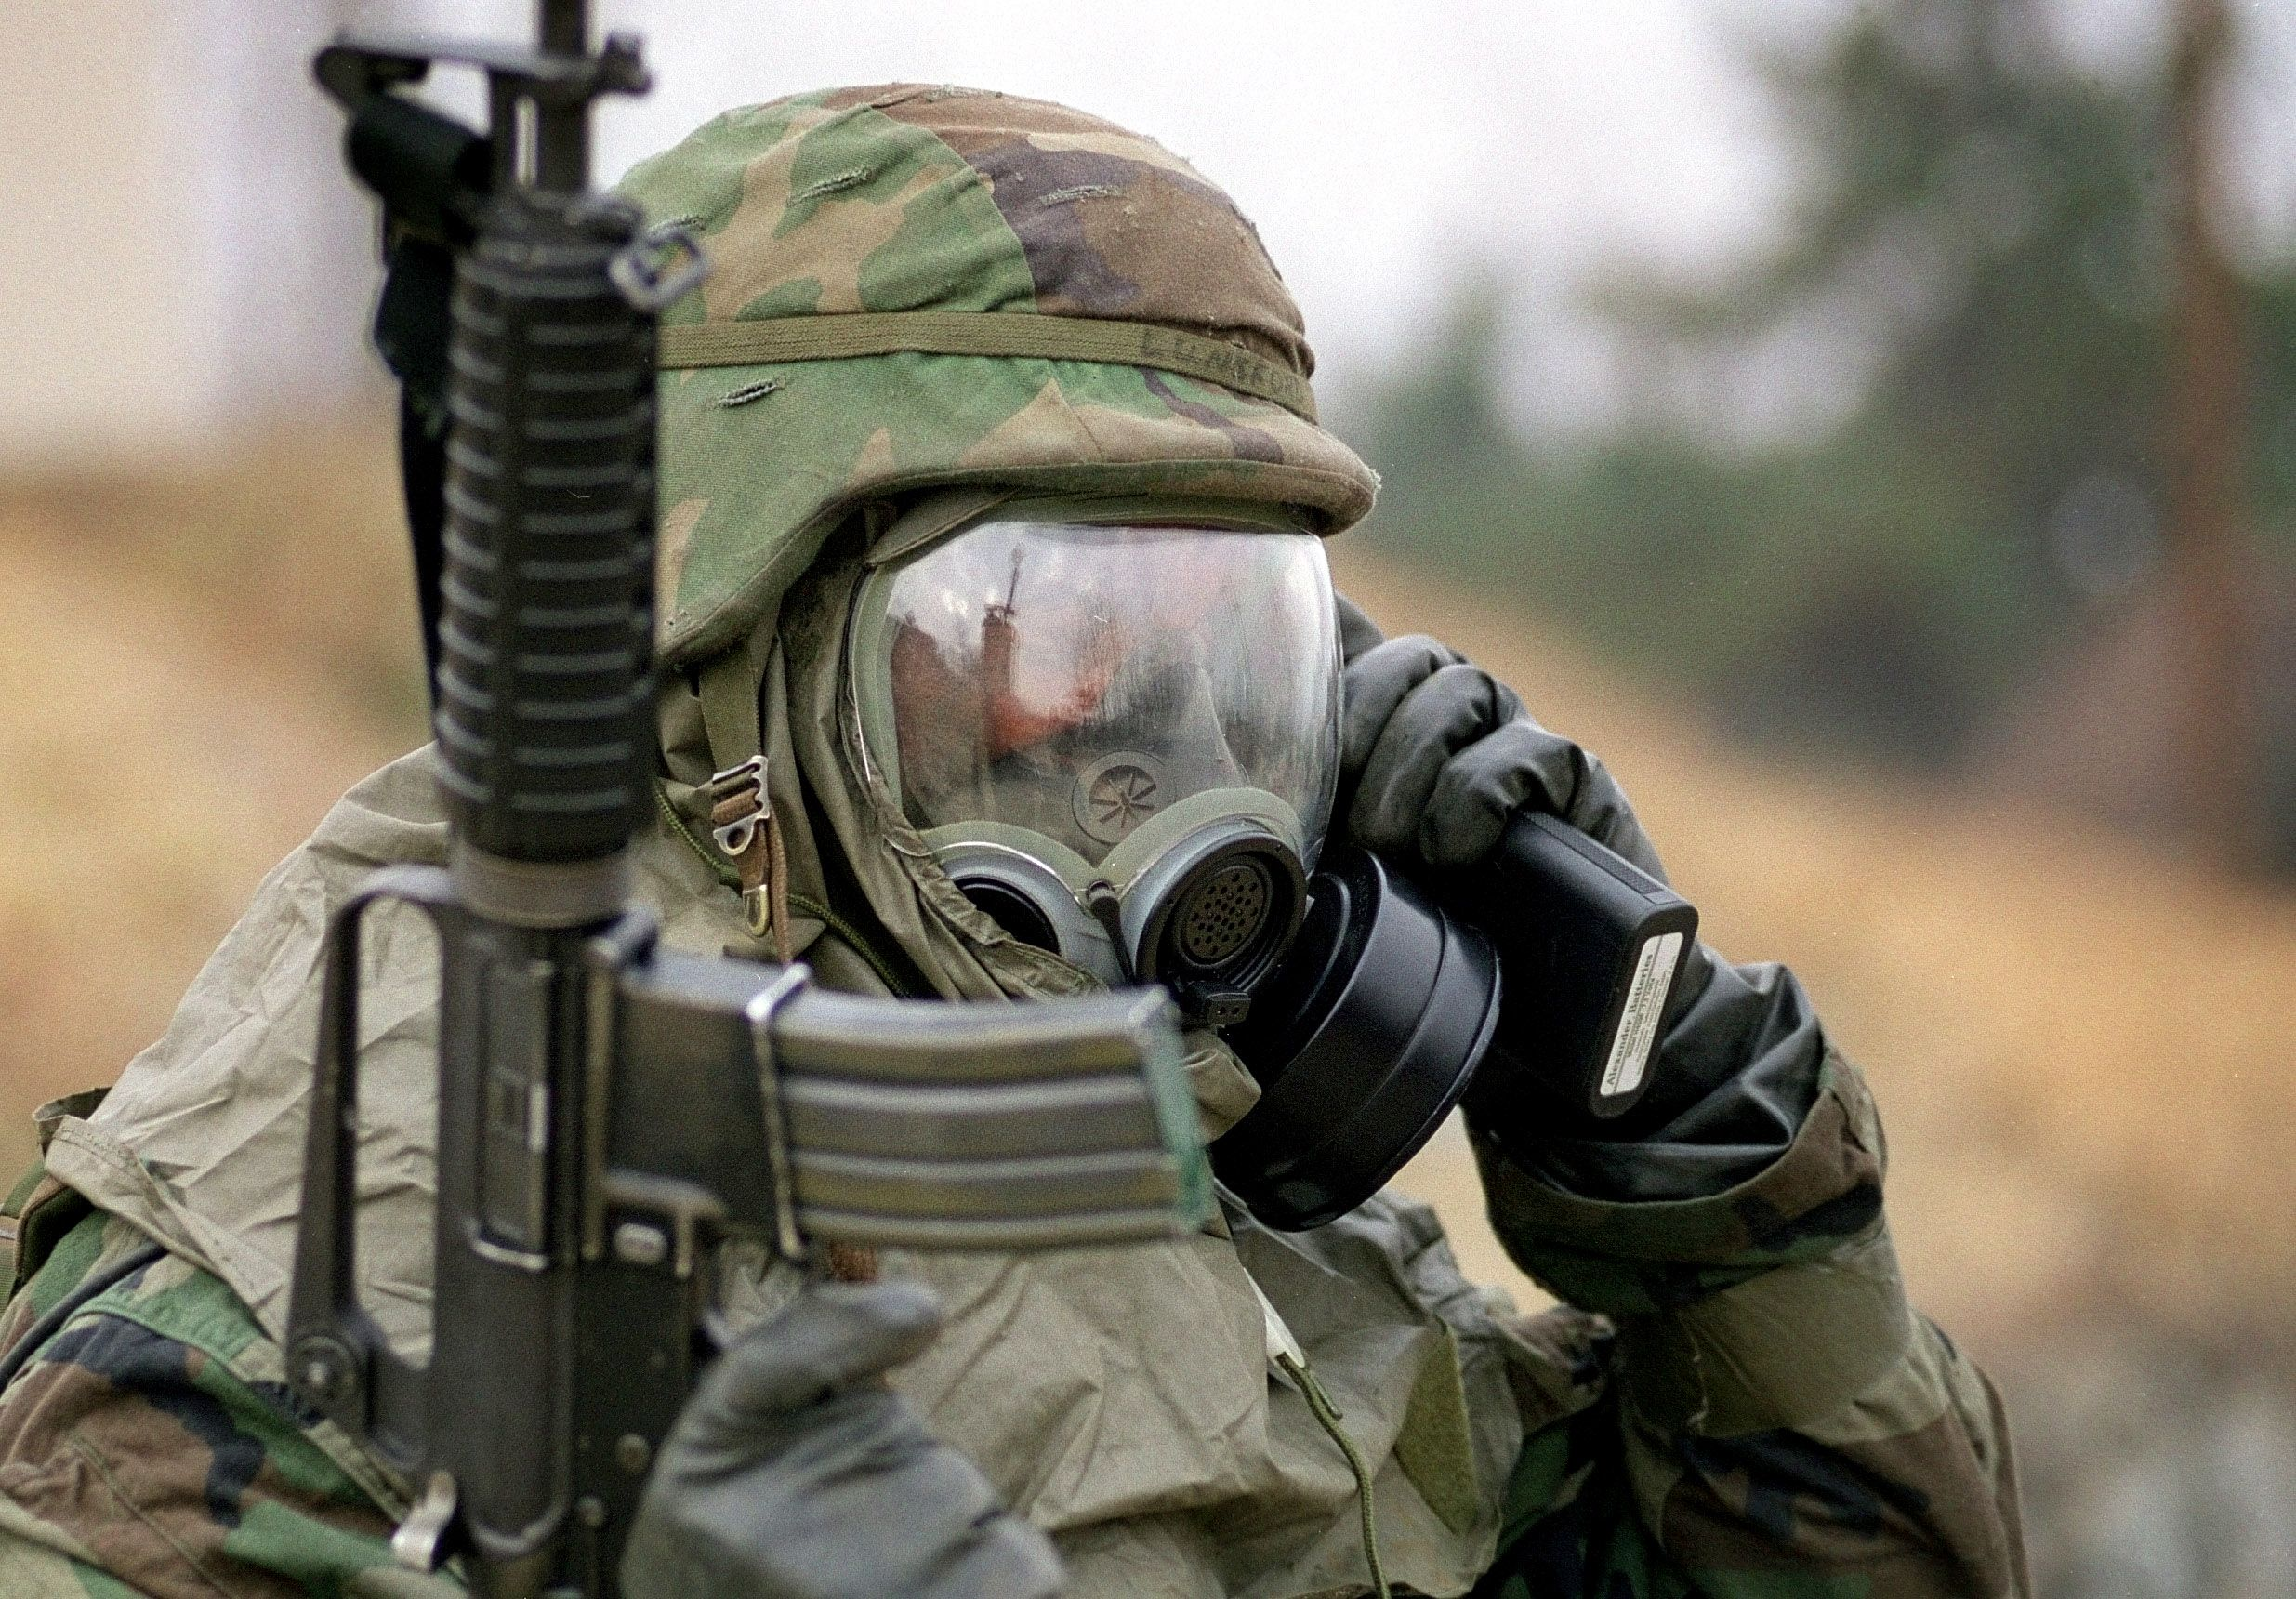 Military Response Gas mask, Chemical weapon, Military